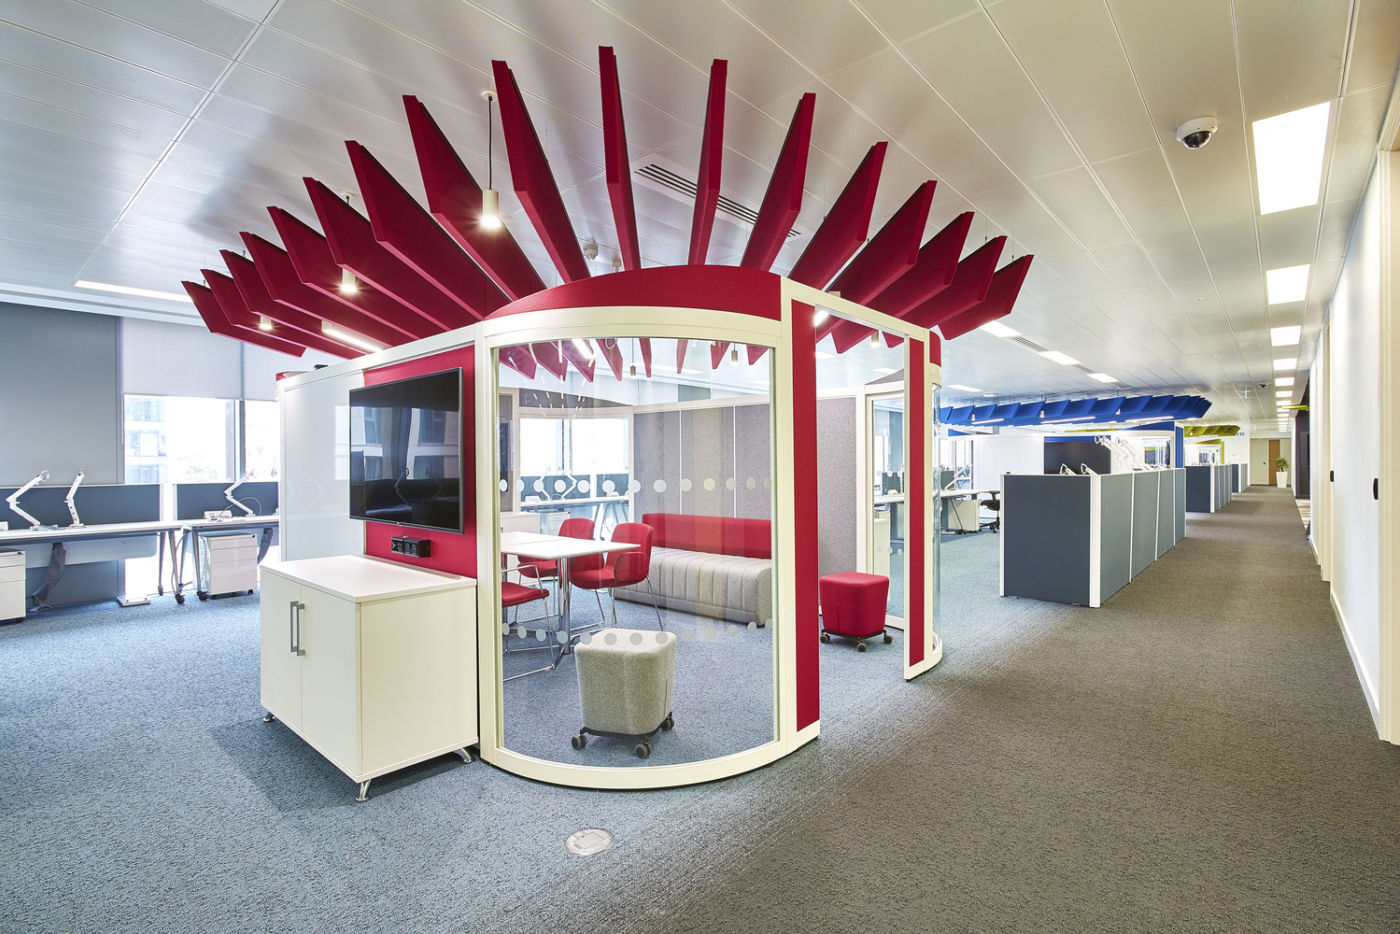 Office meeting pod with red felt paneling